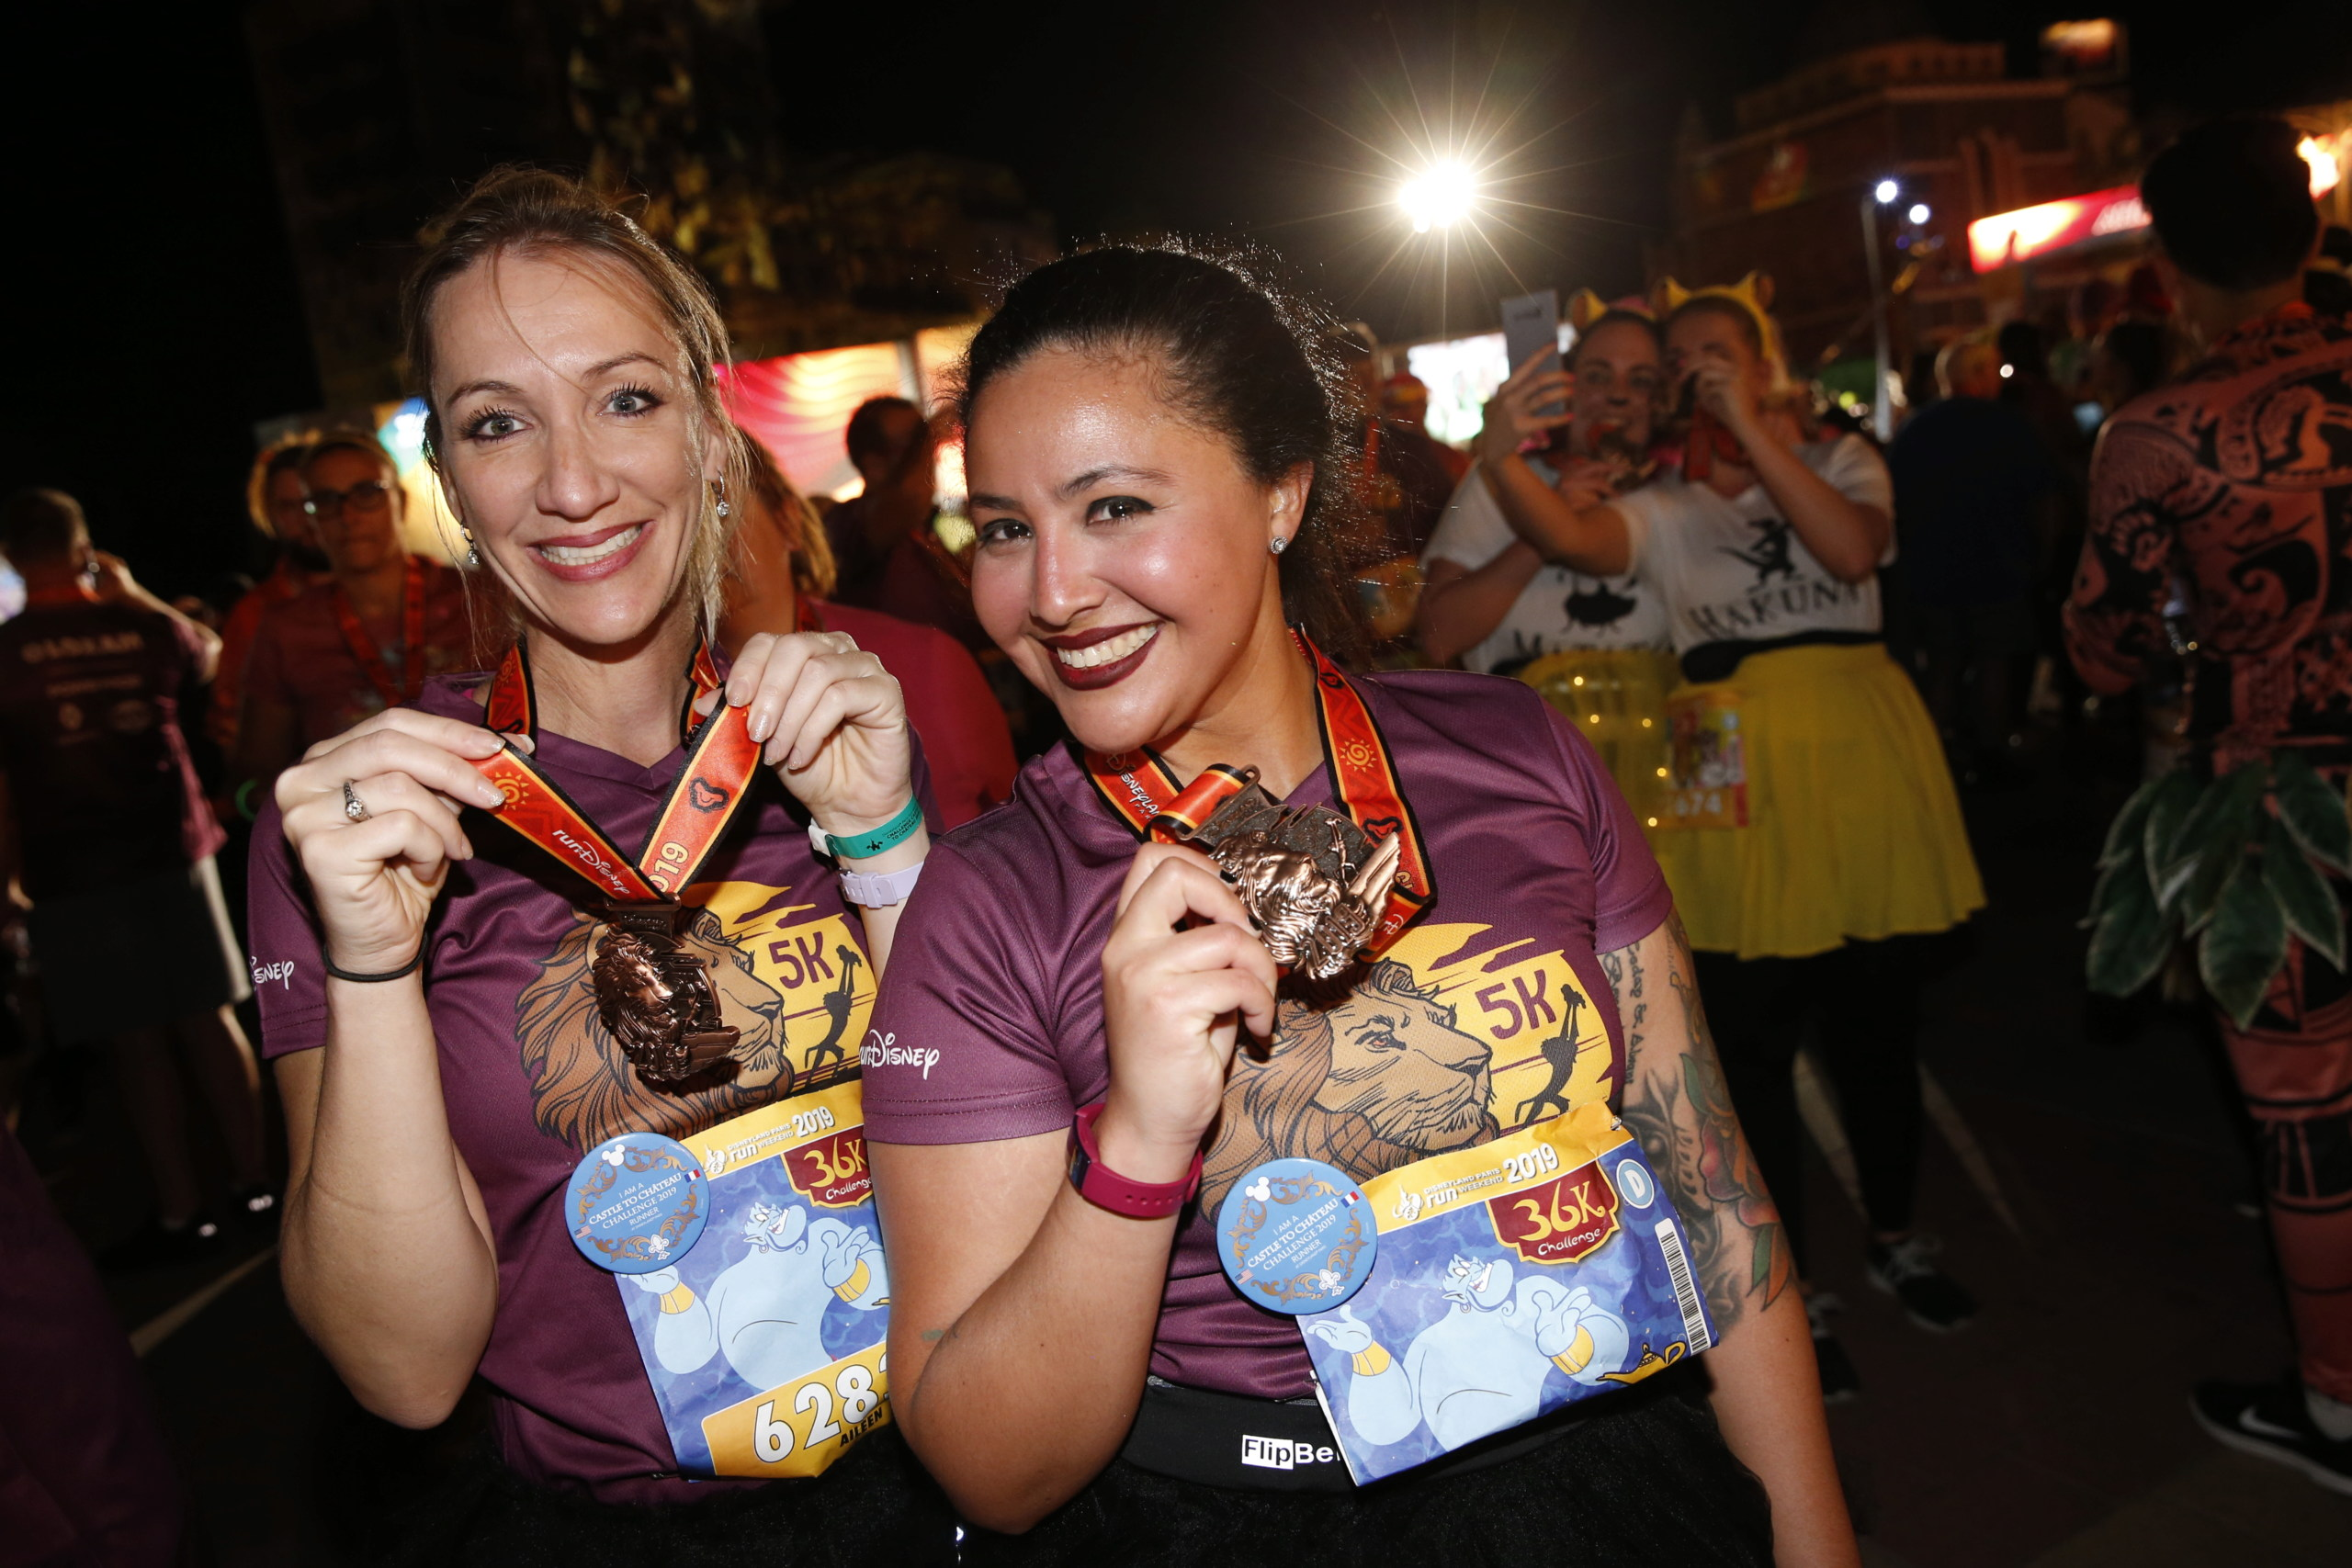 2019 - Disneyland Paris Run Weekend - Pagina 2 5k_410